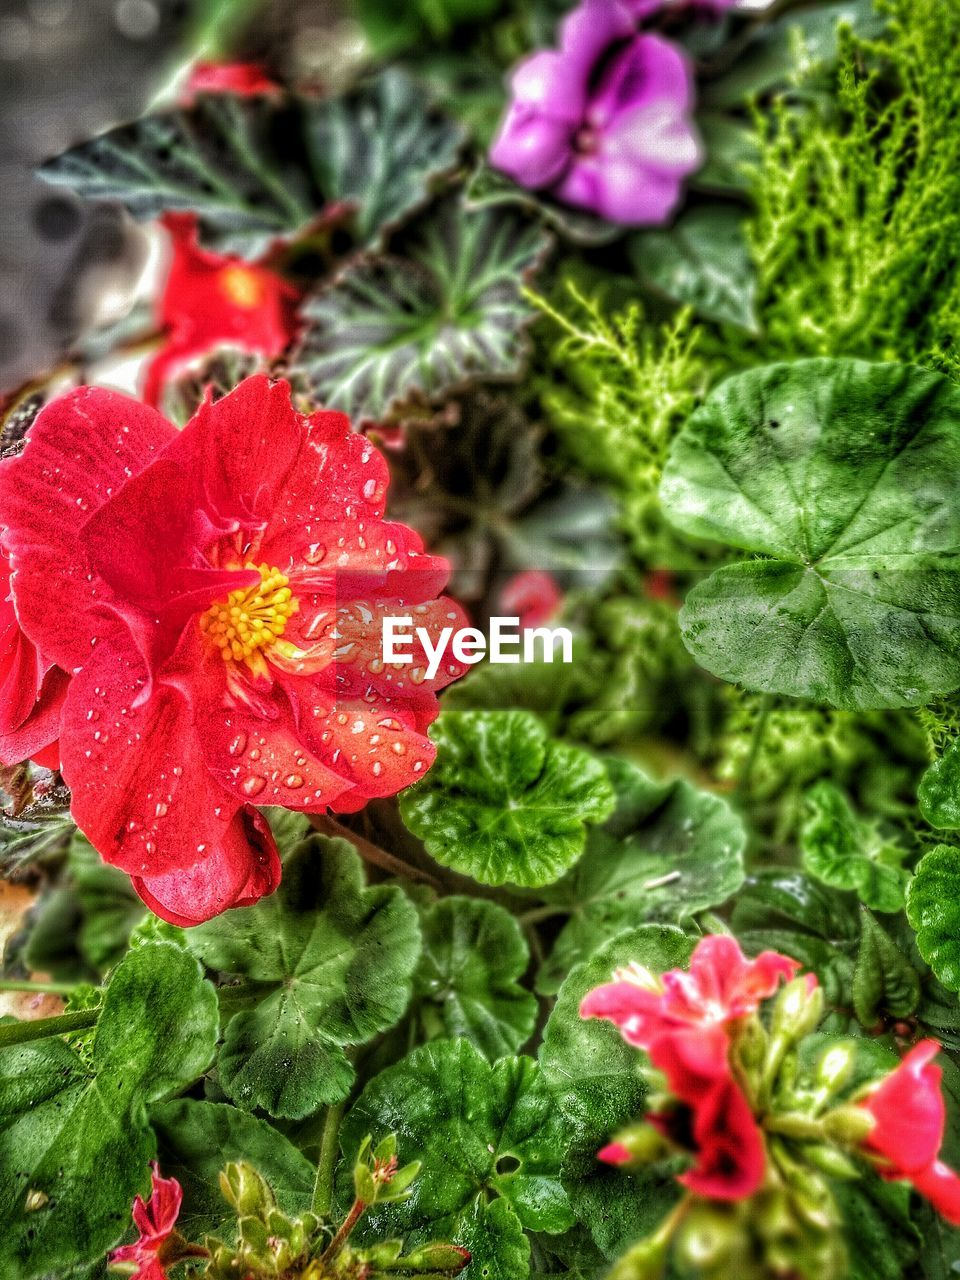 flower, growth, red, beauty in nature, plant, fragility, nature, petal, green color, flower head, no people, freshness, blooming, leaf, day, outdoors, close-up, water